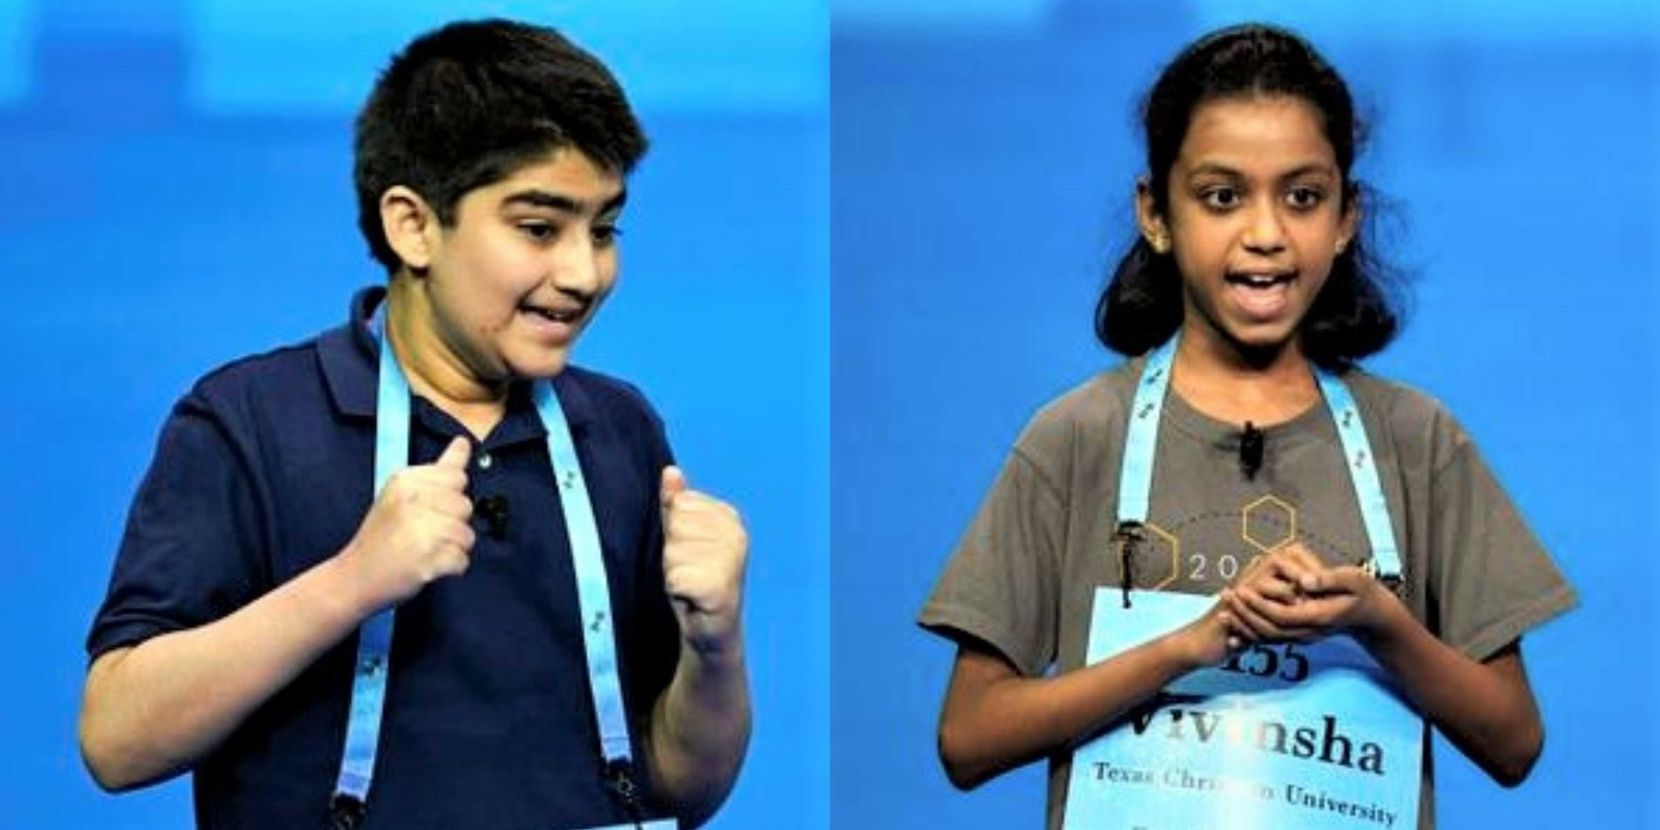 Plano ISD's Dhroov Bharatia (right), 12, and Keller ISD's Vivinsha Veduru, 10, were among the finalists at the bee.